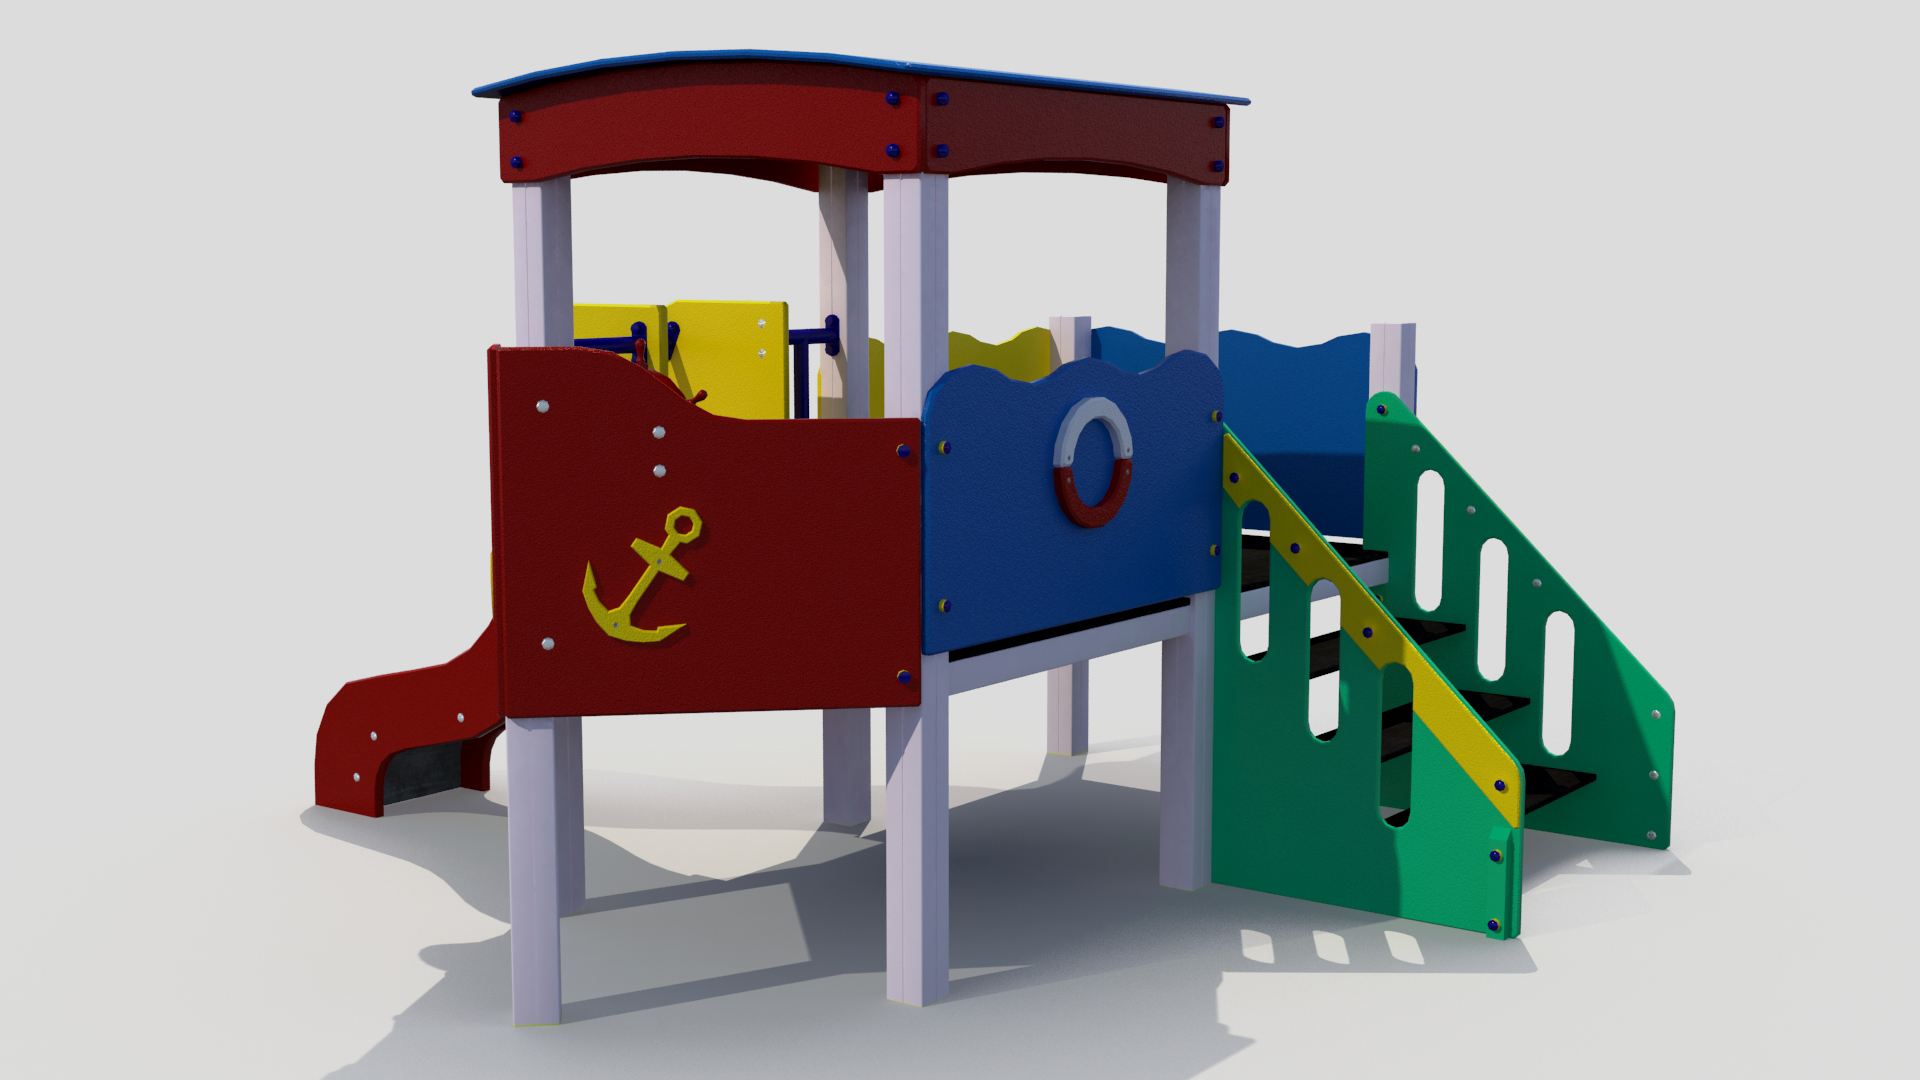 children slide 3d model 3ds max fbx obj 264021